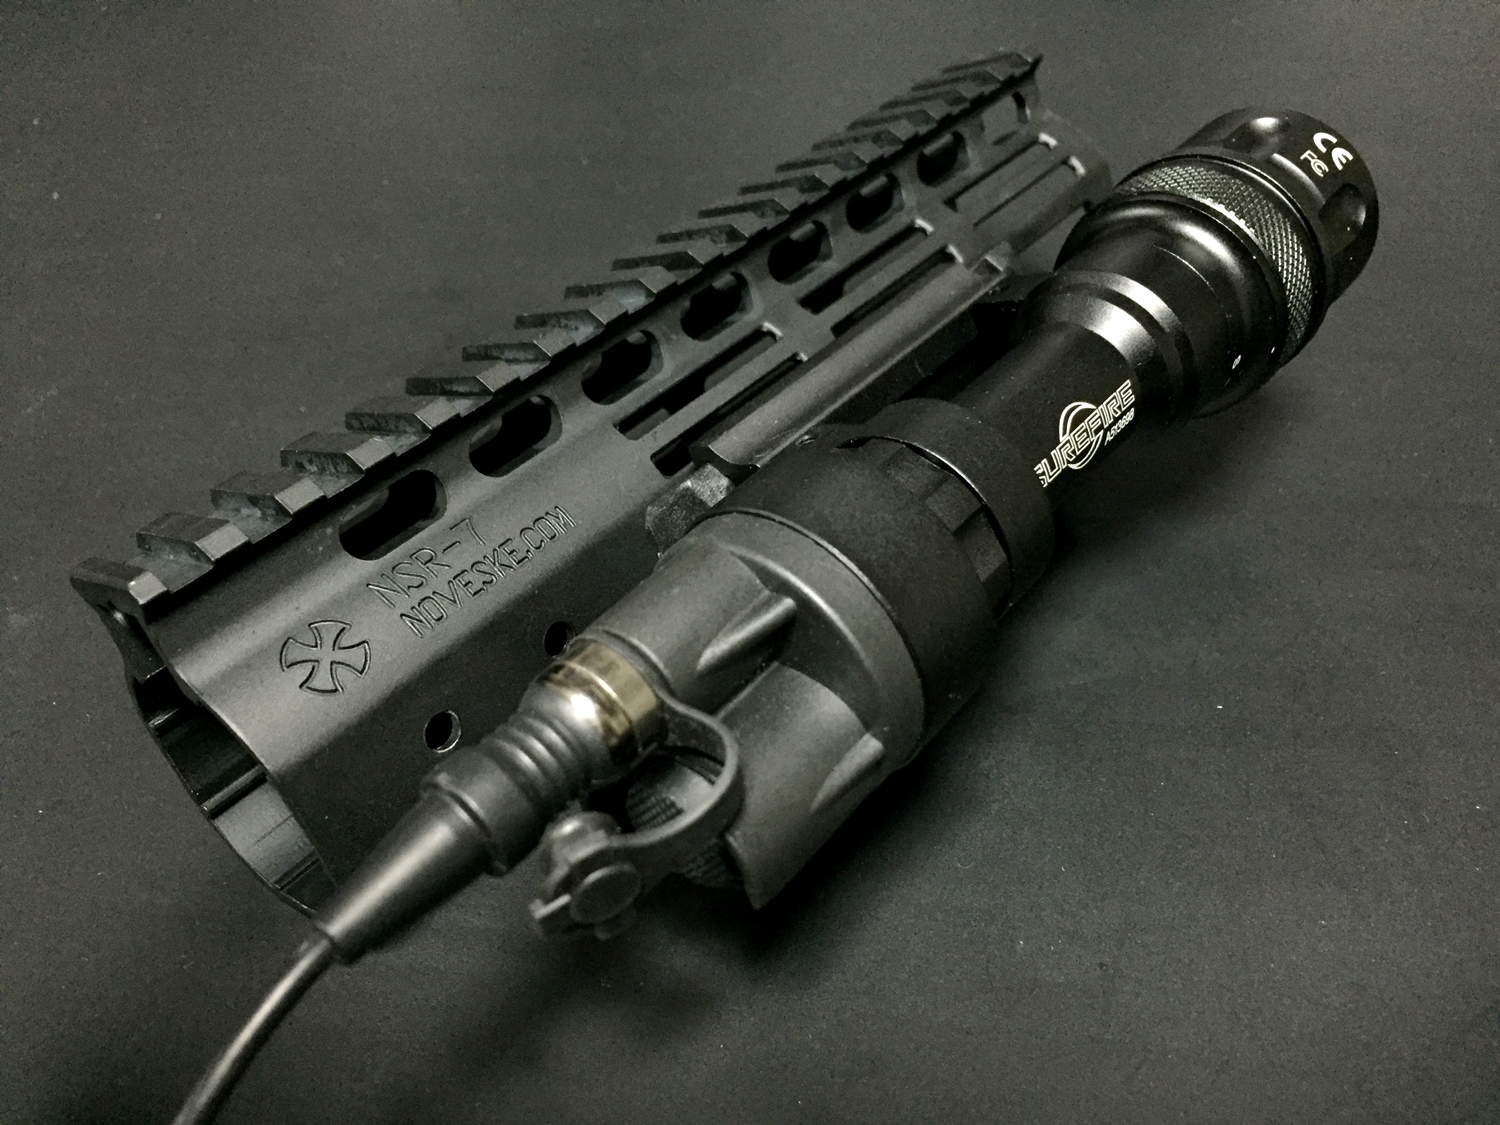 18 M-LOK MAGPUL Tape Switch Mounting Plate for Surefire ST Polymer MADE IN USA マグプル 実物 本家 テープ リモート スイッチ